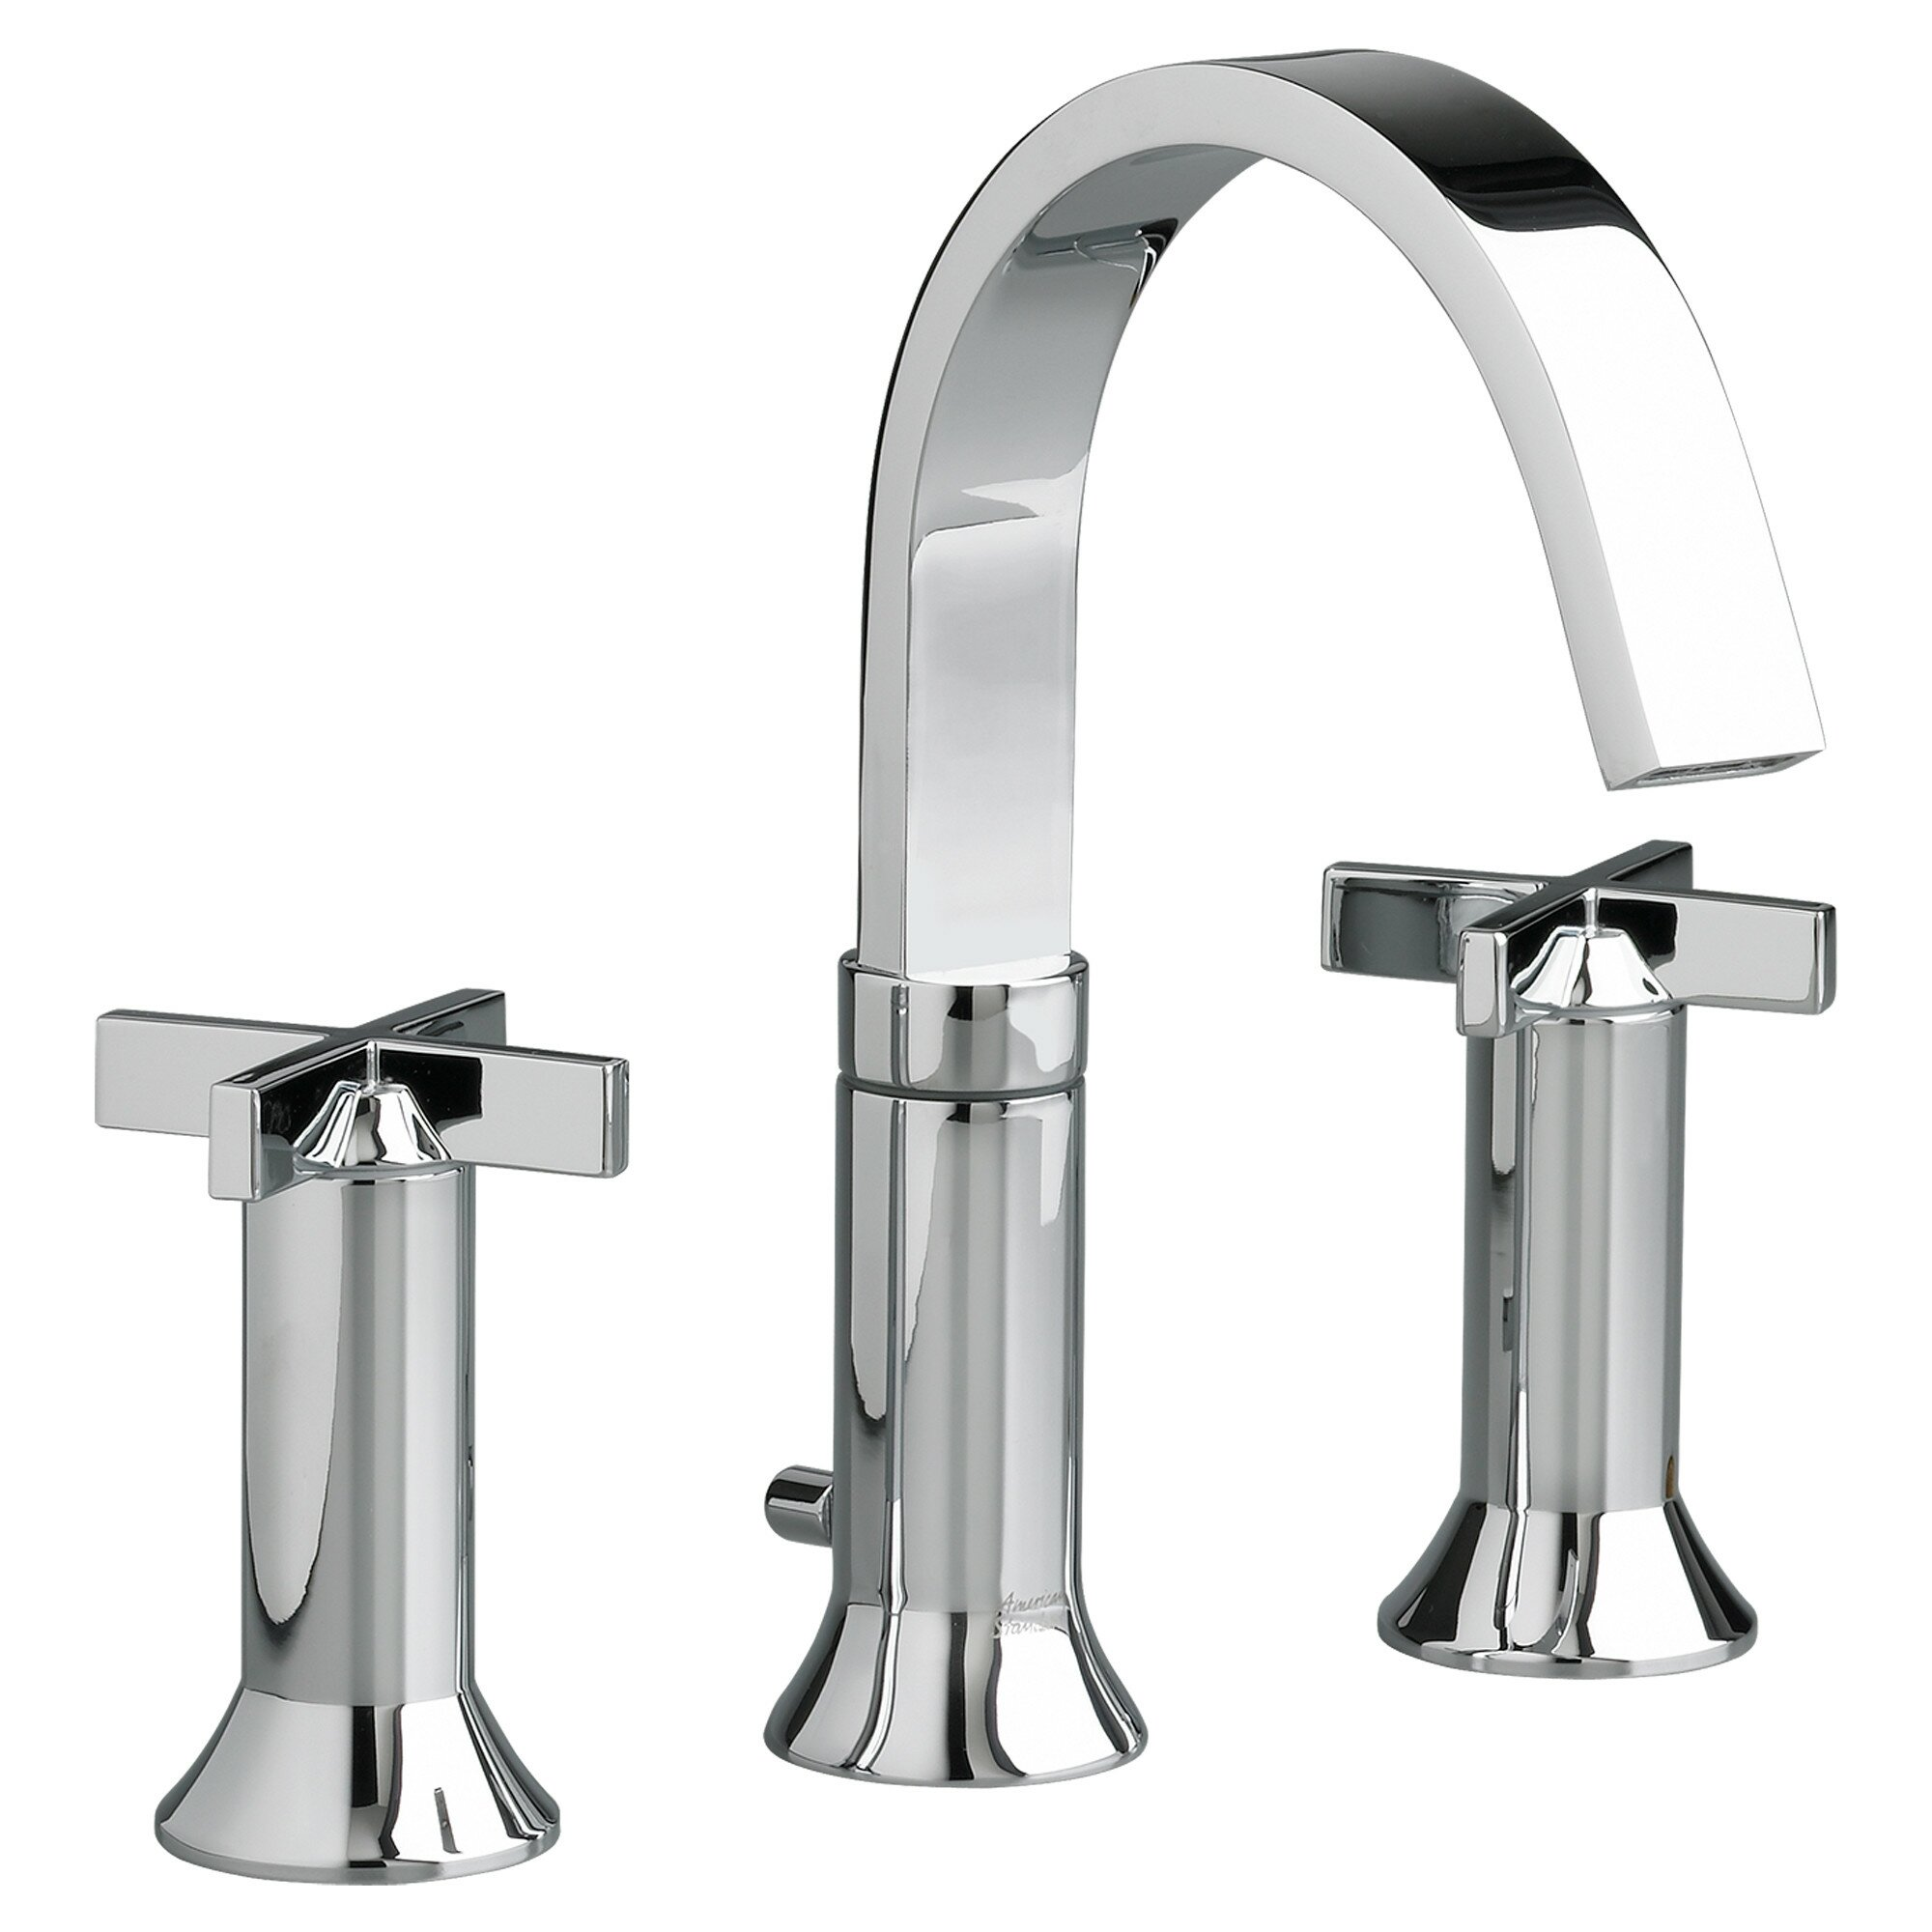 American Standard Berwick Widespread Bathroom Faucet with Double Cross Handles. American Standard Berwick Widespread Bathroom Faucet with Double